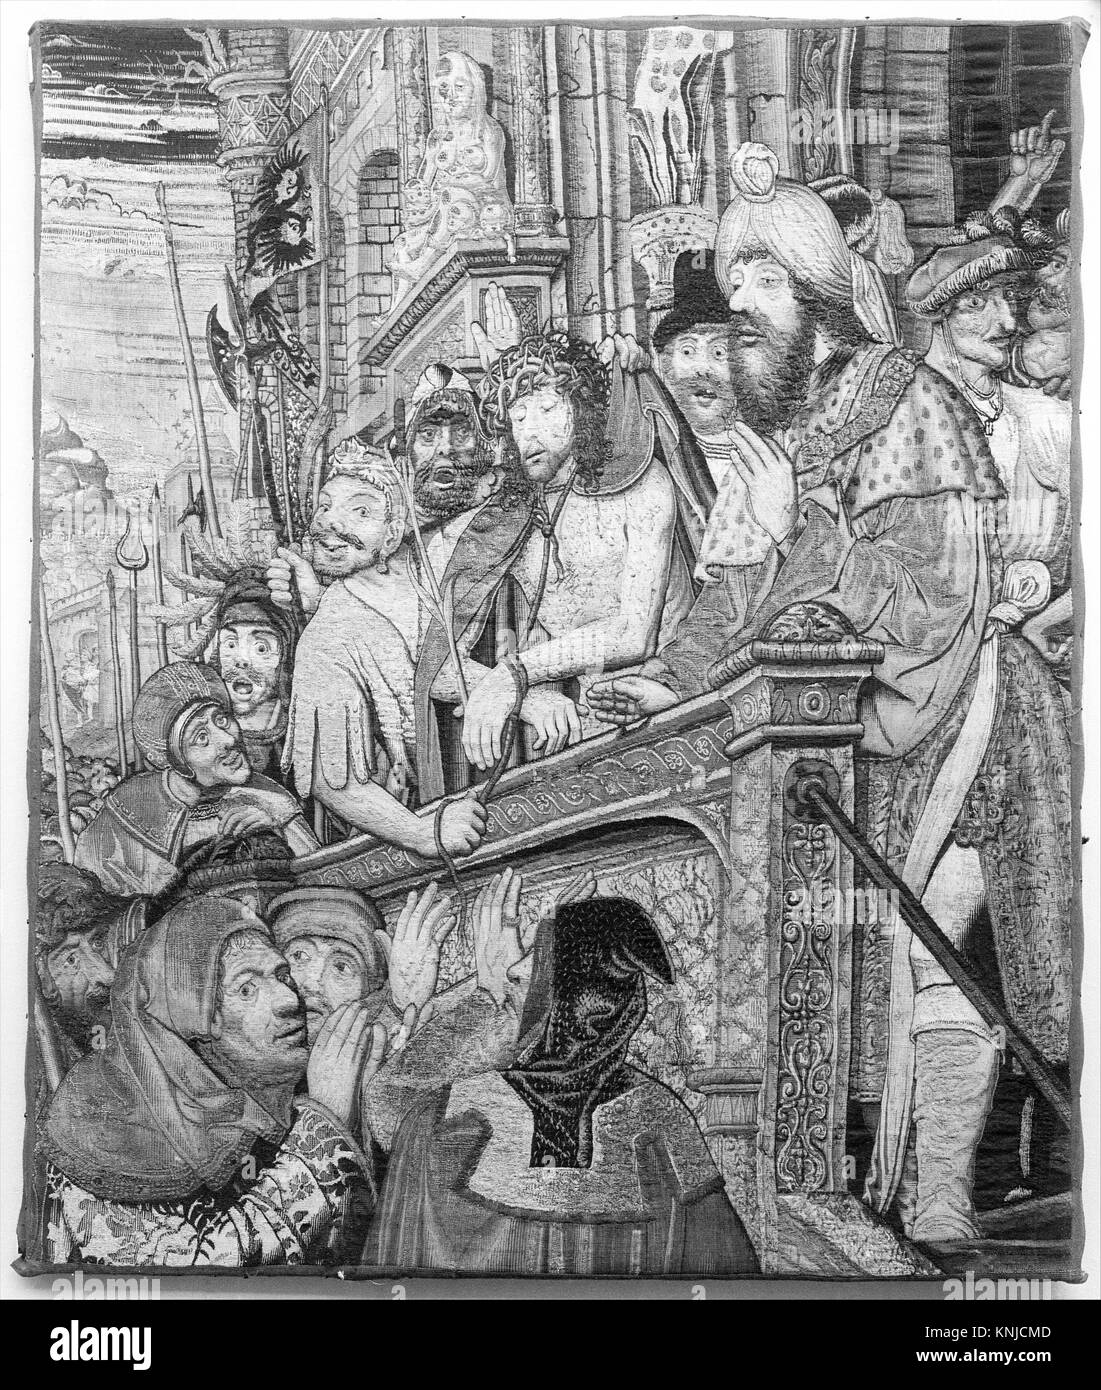 Christ Shown to the People. Designer: After a painting by Quentin Metsys (Netherlandish, Leuven 1466-1530 Kiel); - Stock Image